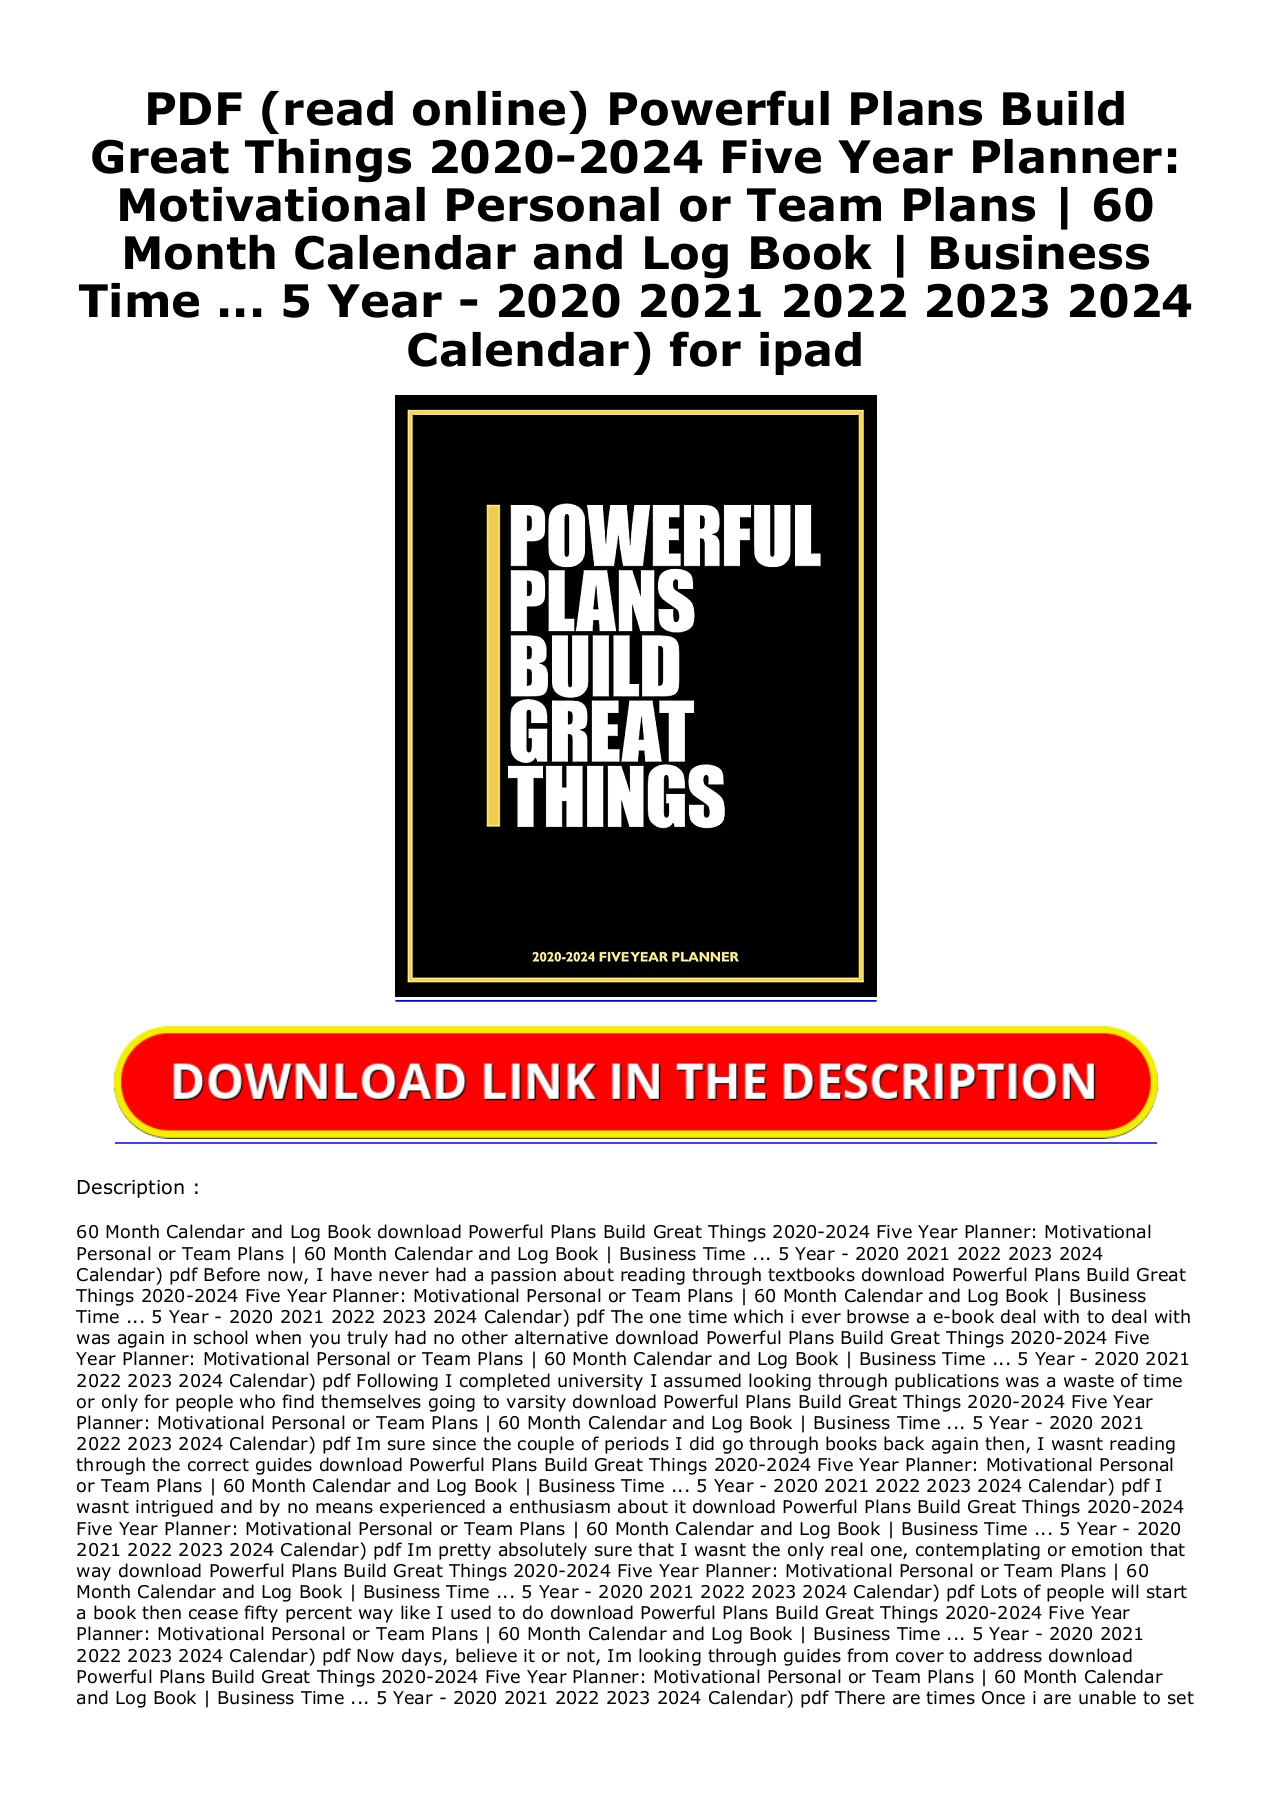 University Of Idaho Academic Calendar 2022 2023.Pdf Read Online Powerful Plans Build Great Things 2020 2024 Five Year Planner Motivational Personal Or Team Plans 60 Month Calendar And Log Book Business Time 5 Year 2020